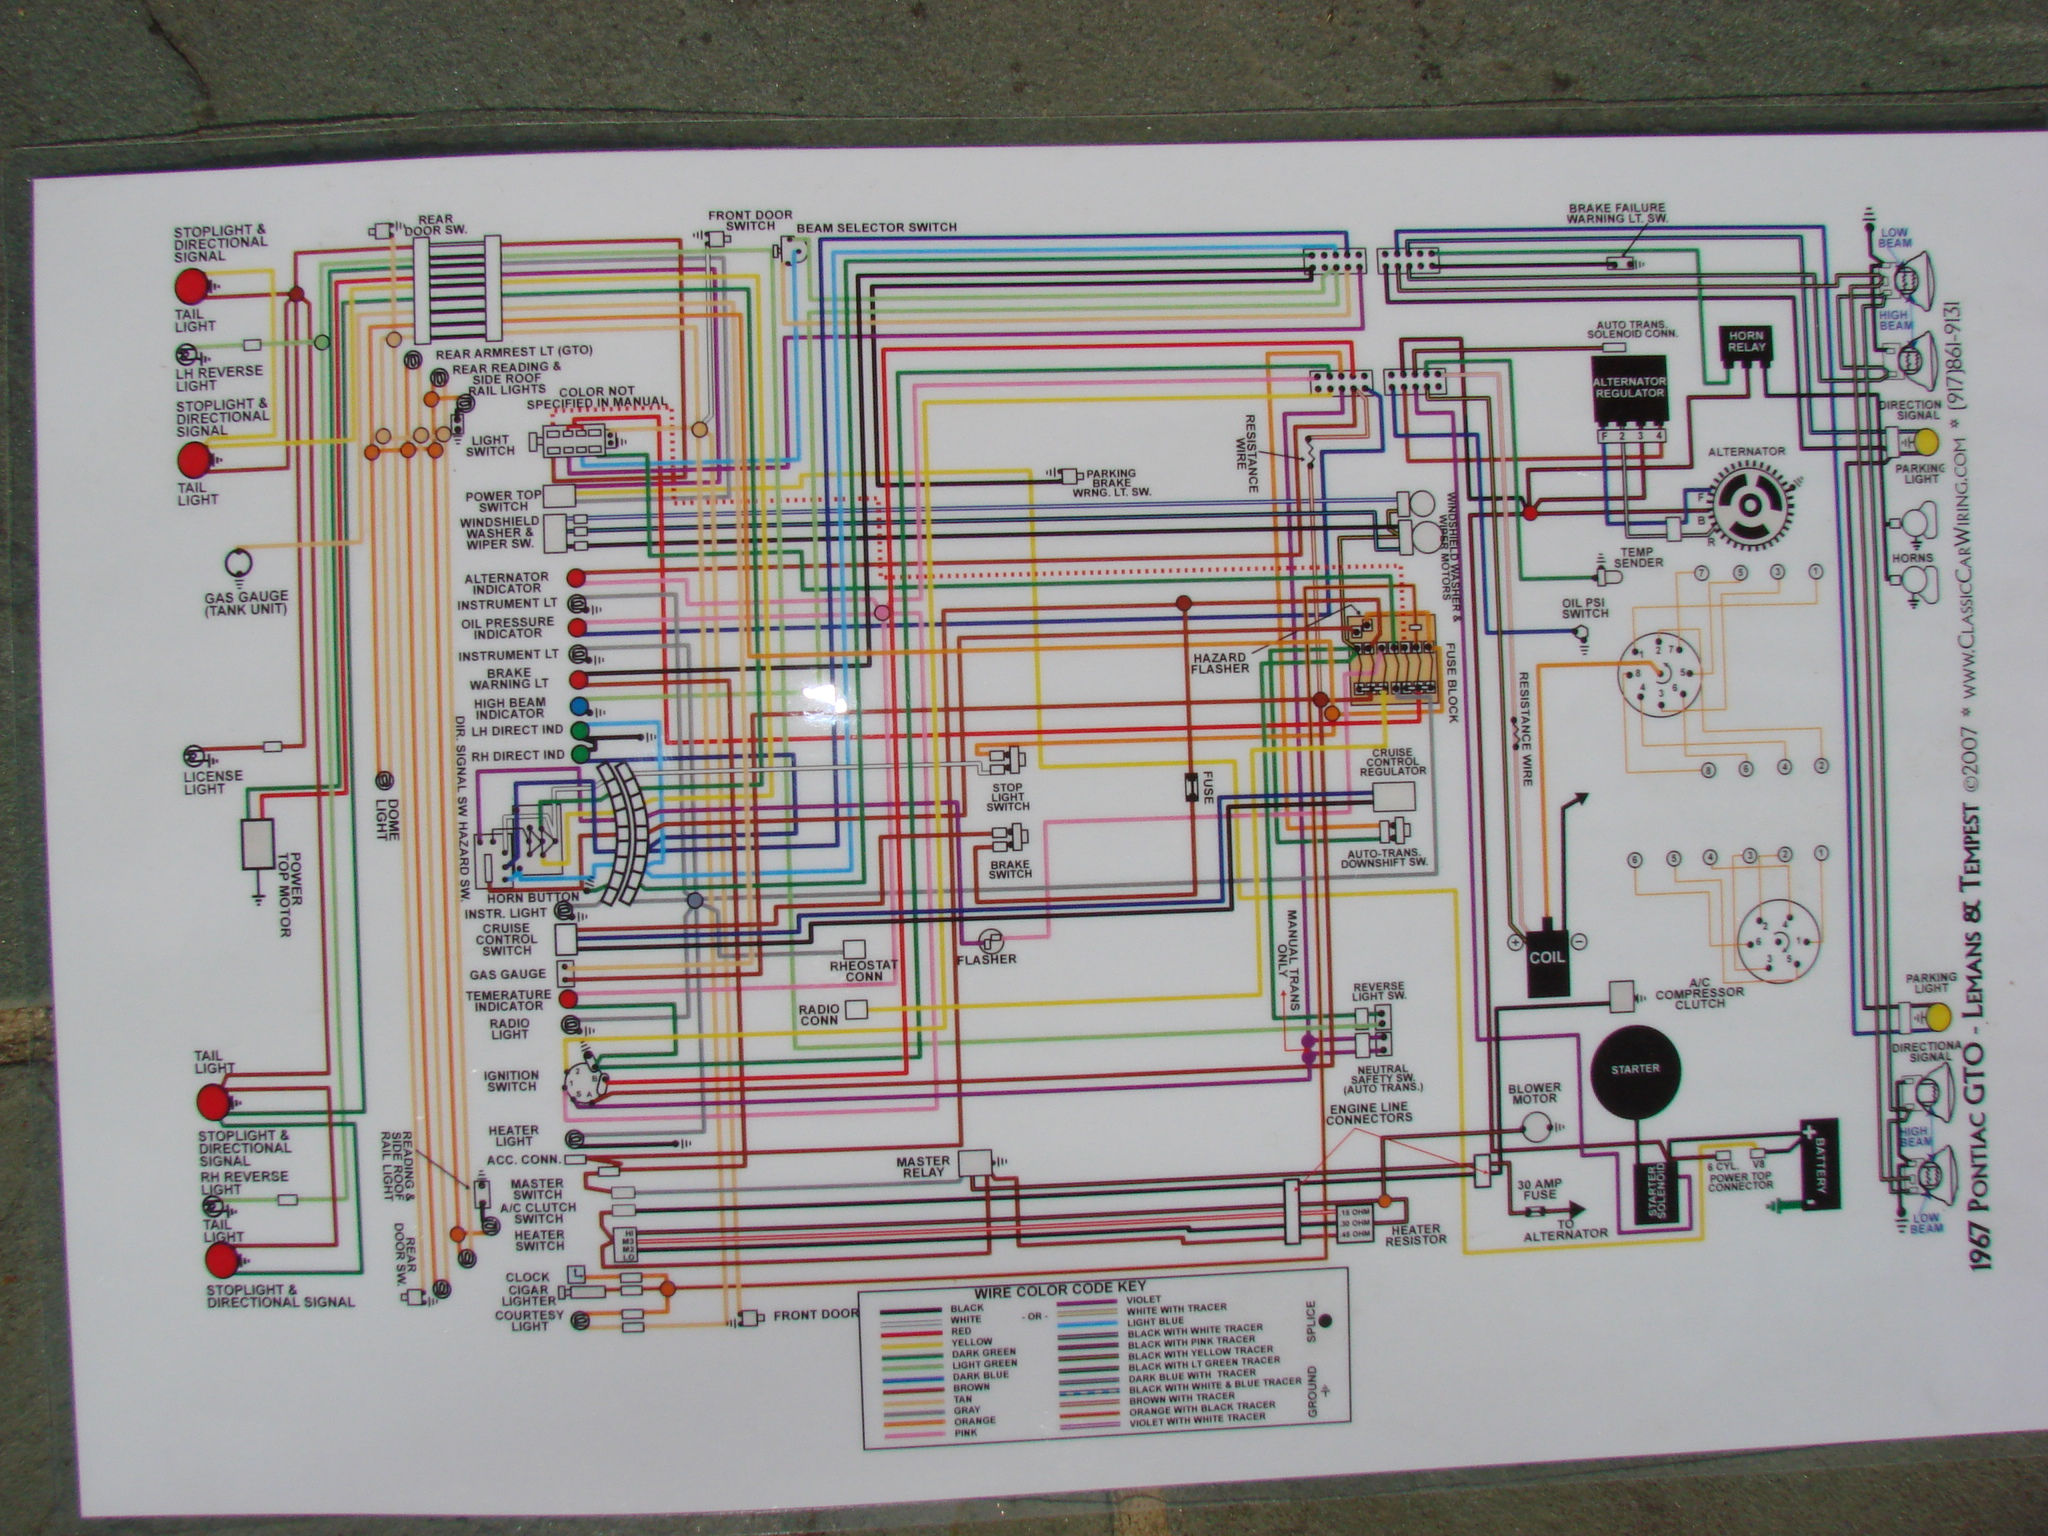 Wiring Diagram 1964 Pontiac Gto | Wiring Diagram on 68 chevy chevelle ss wiring-diagram, 1970 cutlass wiring-diagram, 66 mustang lights wiring-diagram,